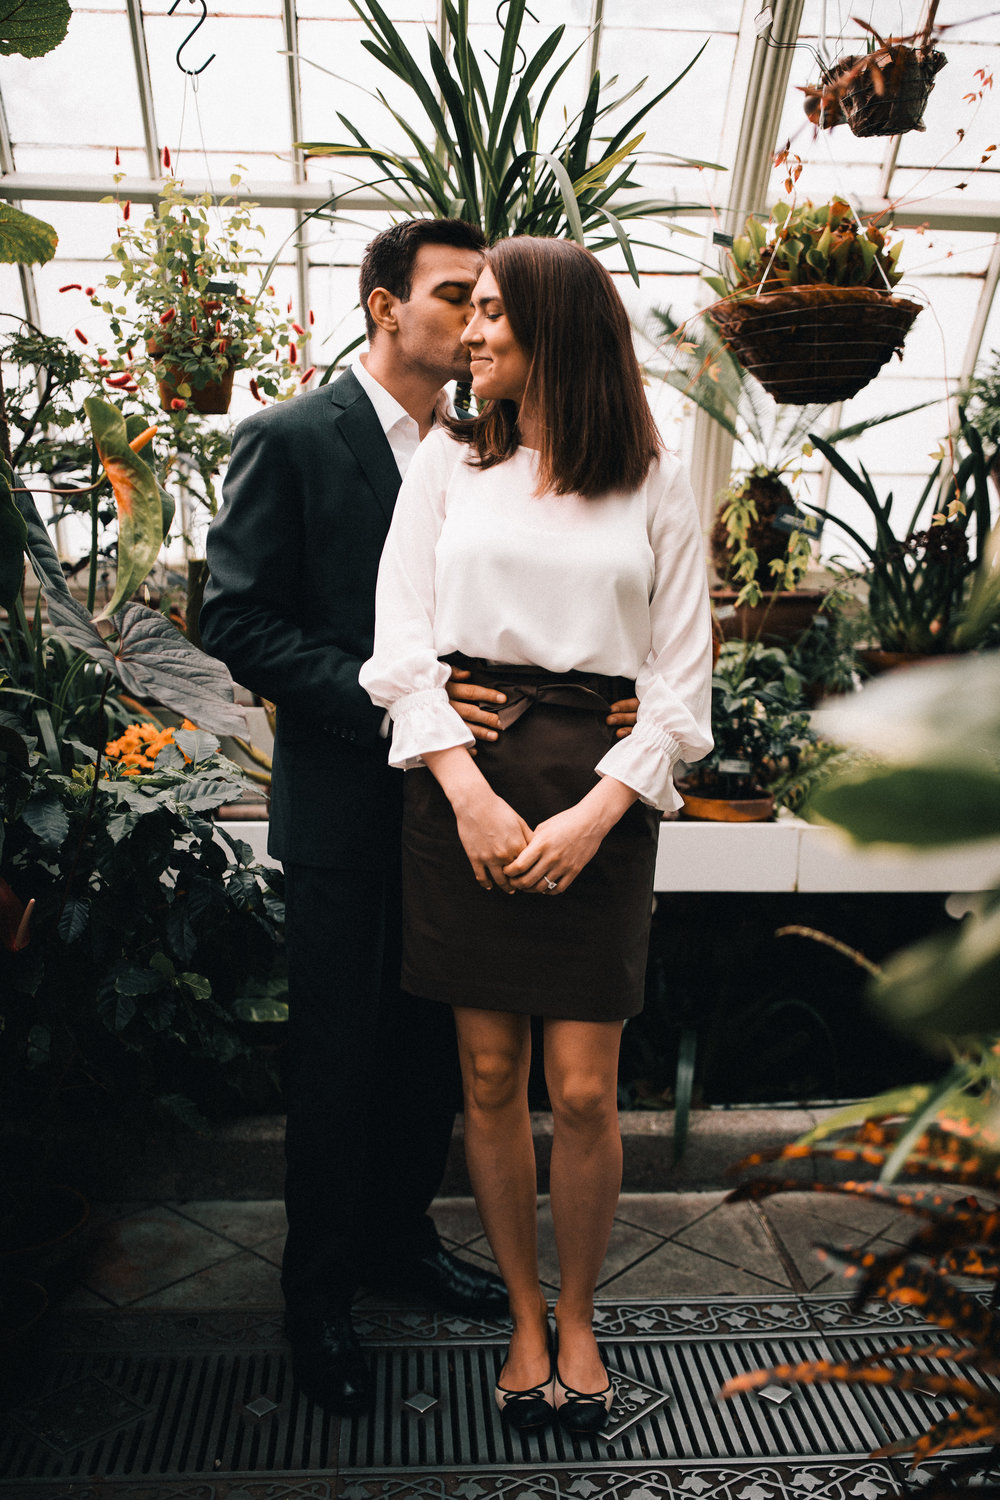 2019_04_ 072019.04.08 Ana and Richard Engagement Session Edited For Web 0005.jpg